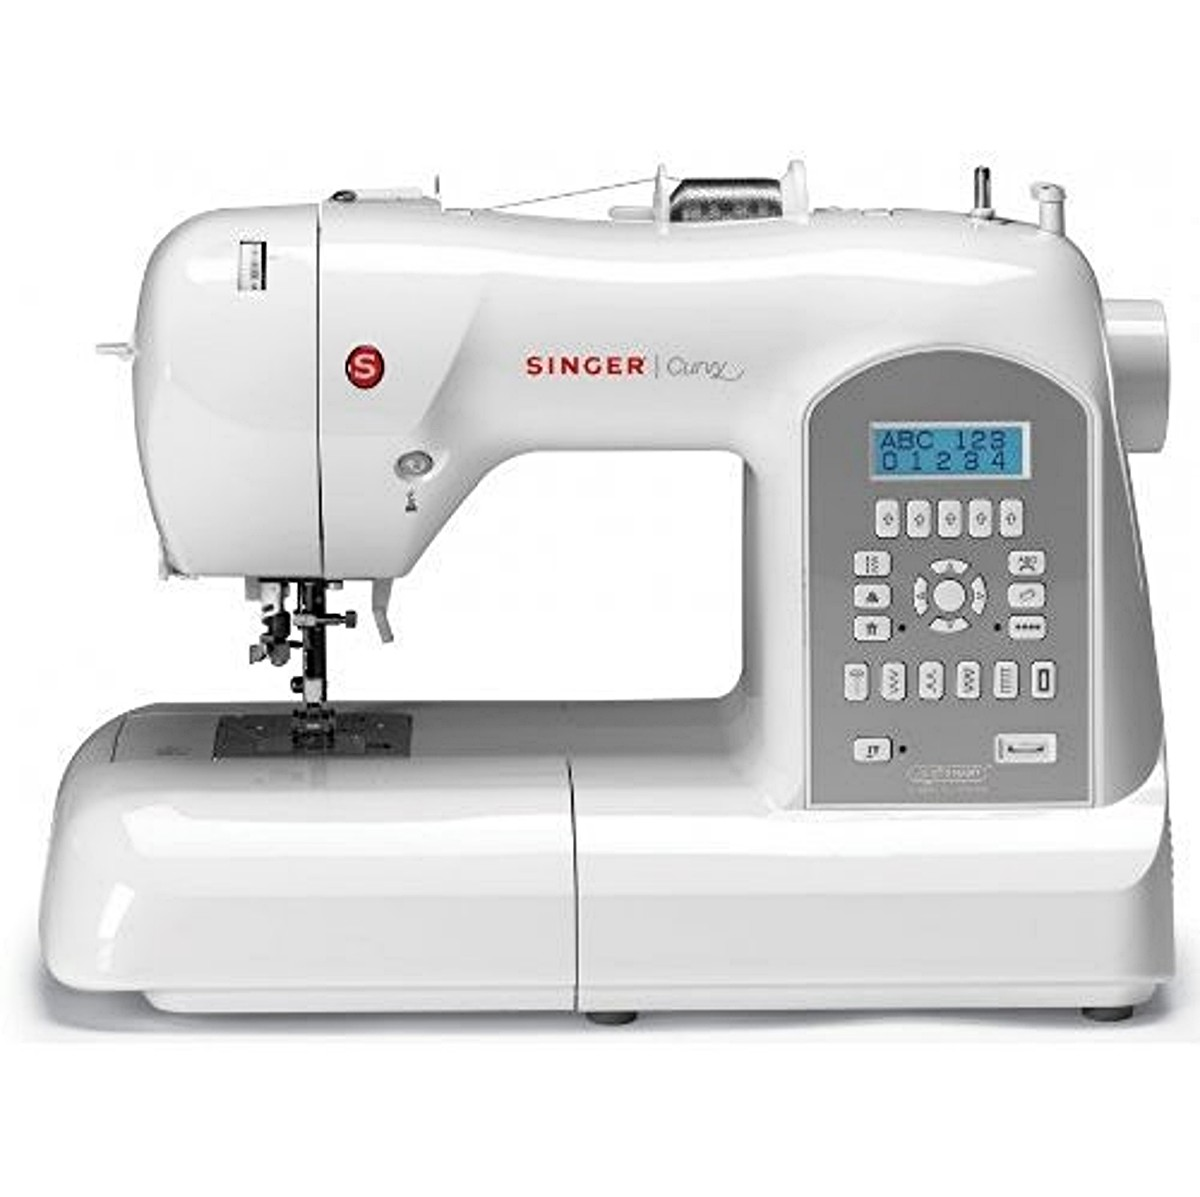 Singer Curvy 8770 Sewing Machine Review